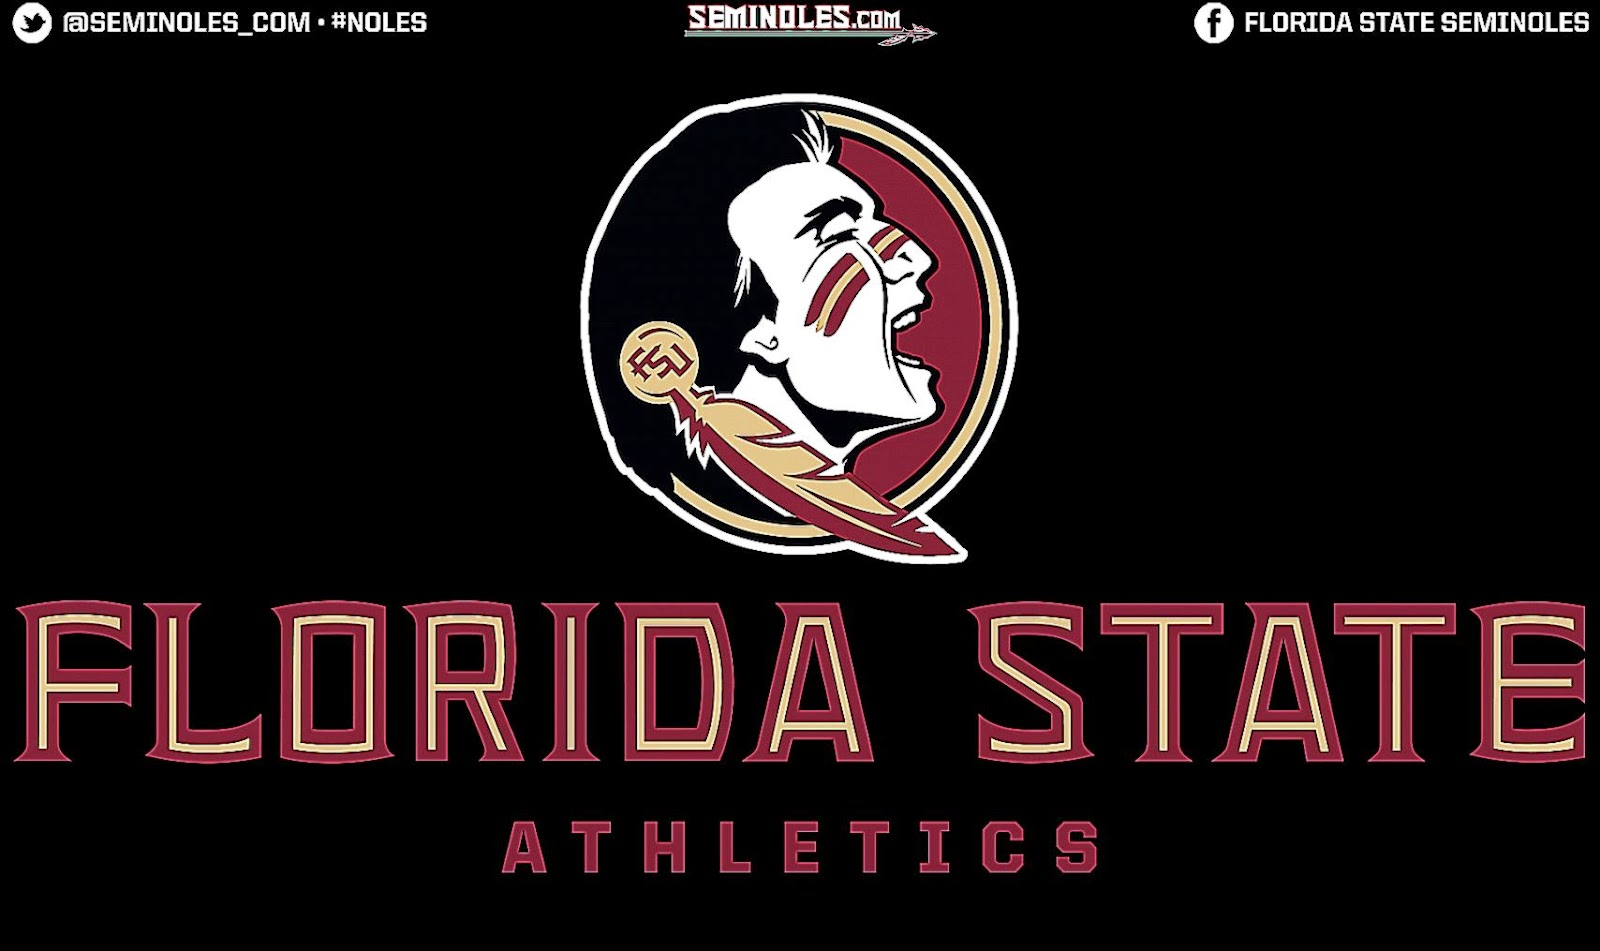 Volleyball Wallpaper Quotes Florida State Seminoles Wallpaper Cool Hd Wallpapers